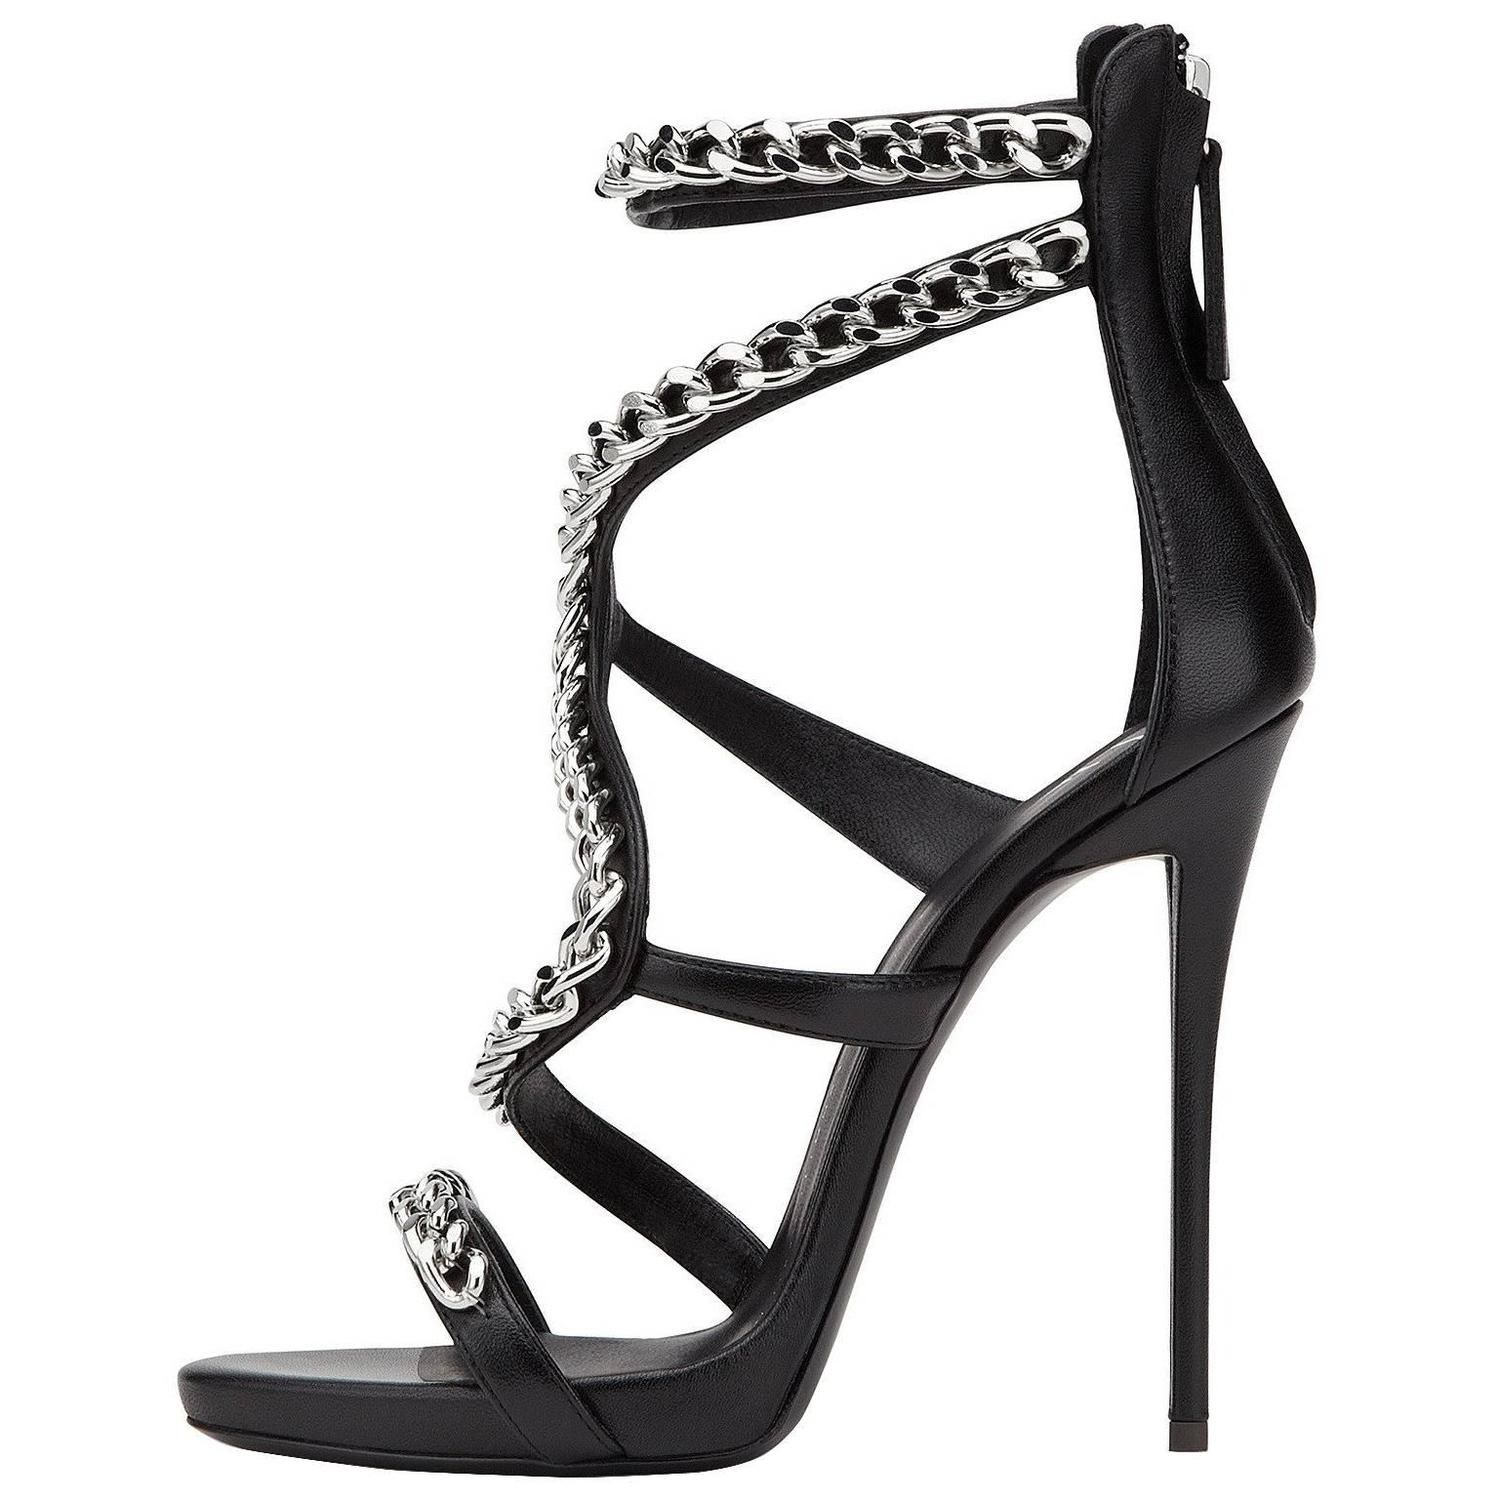 Gisuseppe Zanotti New Sold Out Black Leather Silver Chain Sandals Heels in Box